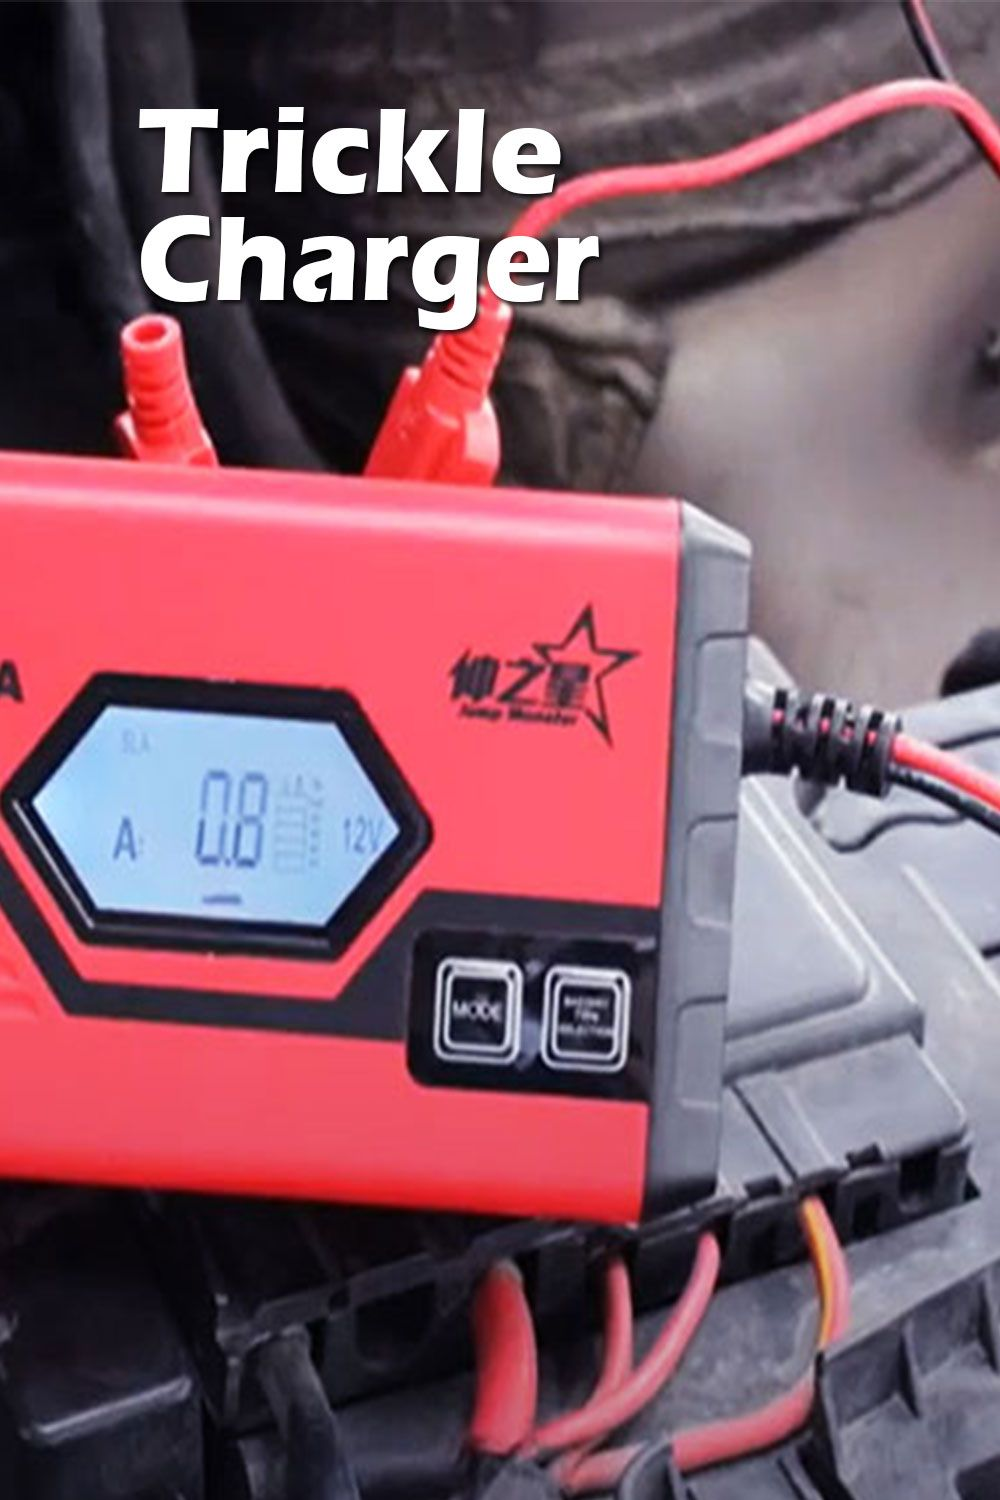 How To Charge A Car Battery With A Trickle Charger Battery Charger Car Battery Charger Charger